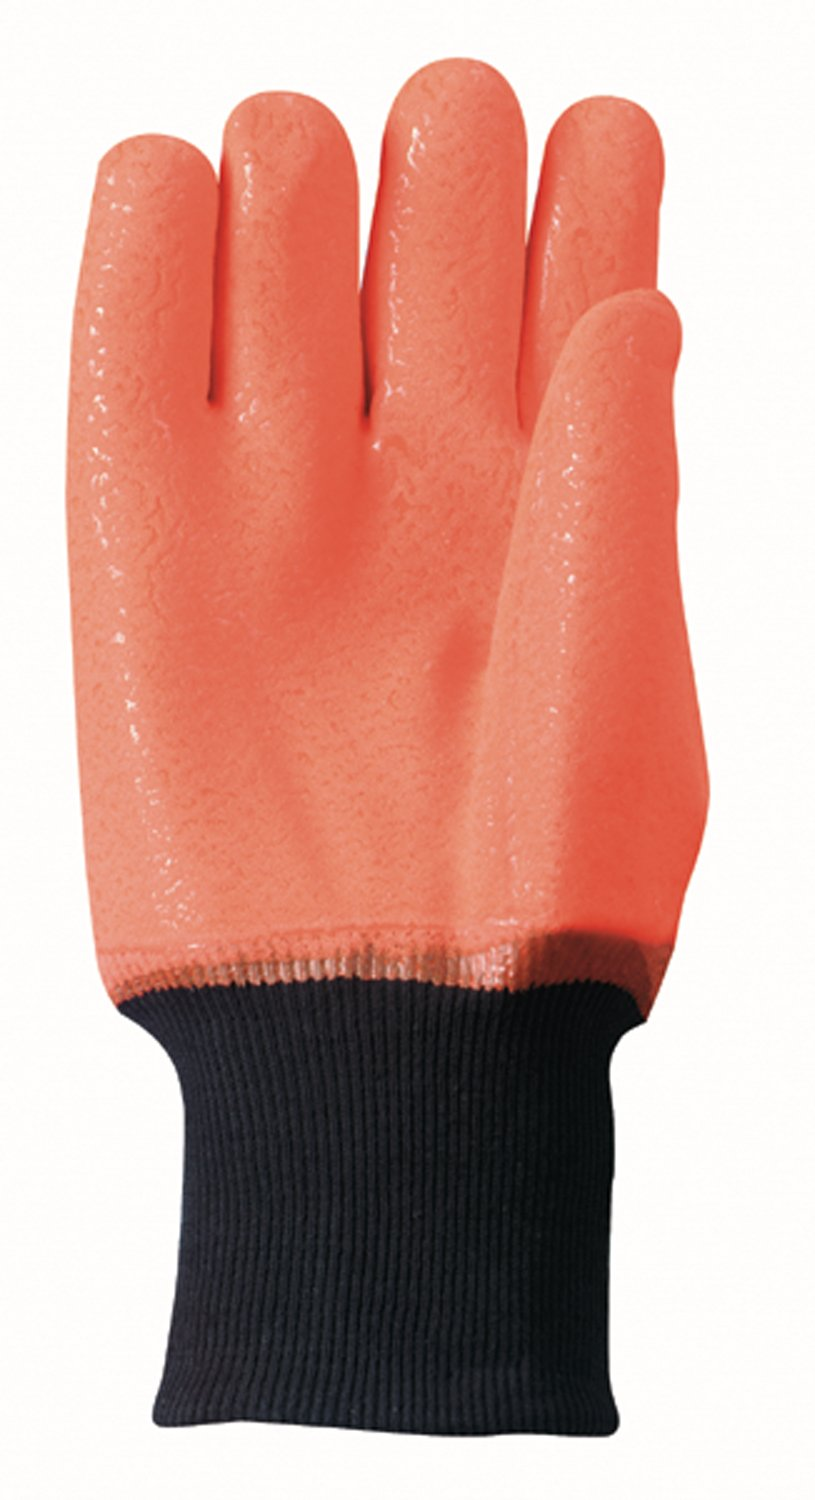 PVC Coated Chemical Resistant Cold Weather Work Gloves Wells Lamont 164 One Size High Visibility